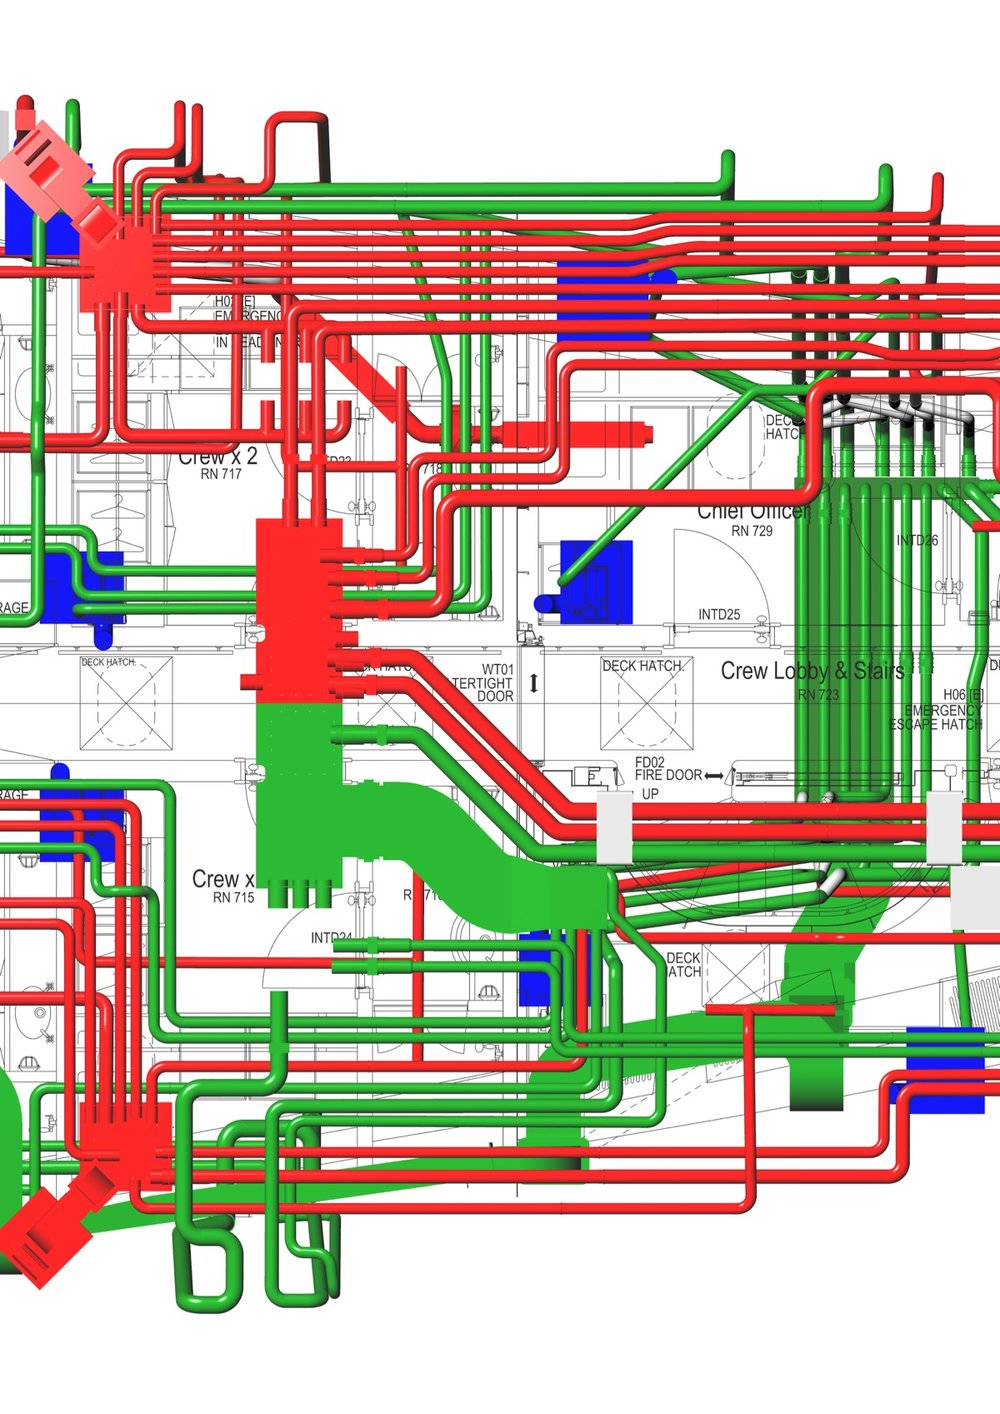 Pipe and wiring layouts for large cruising yacht